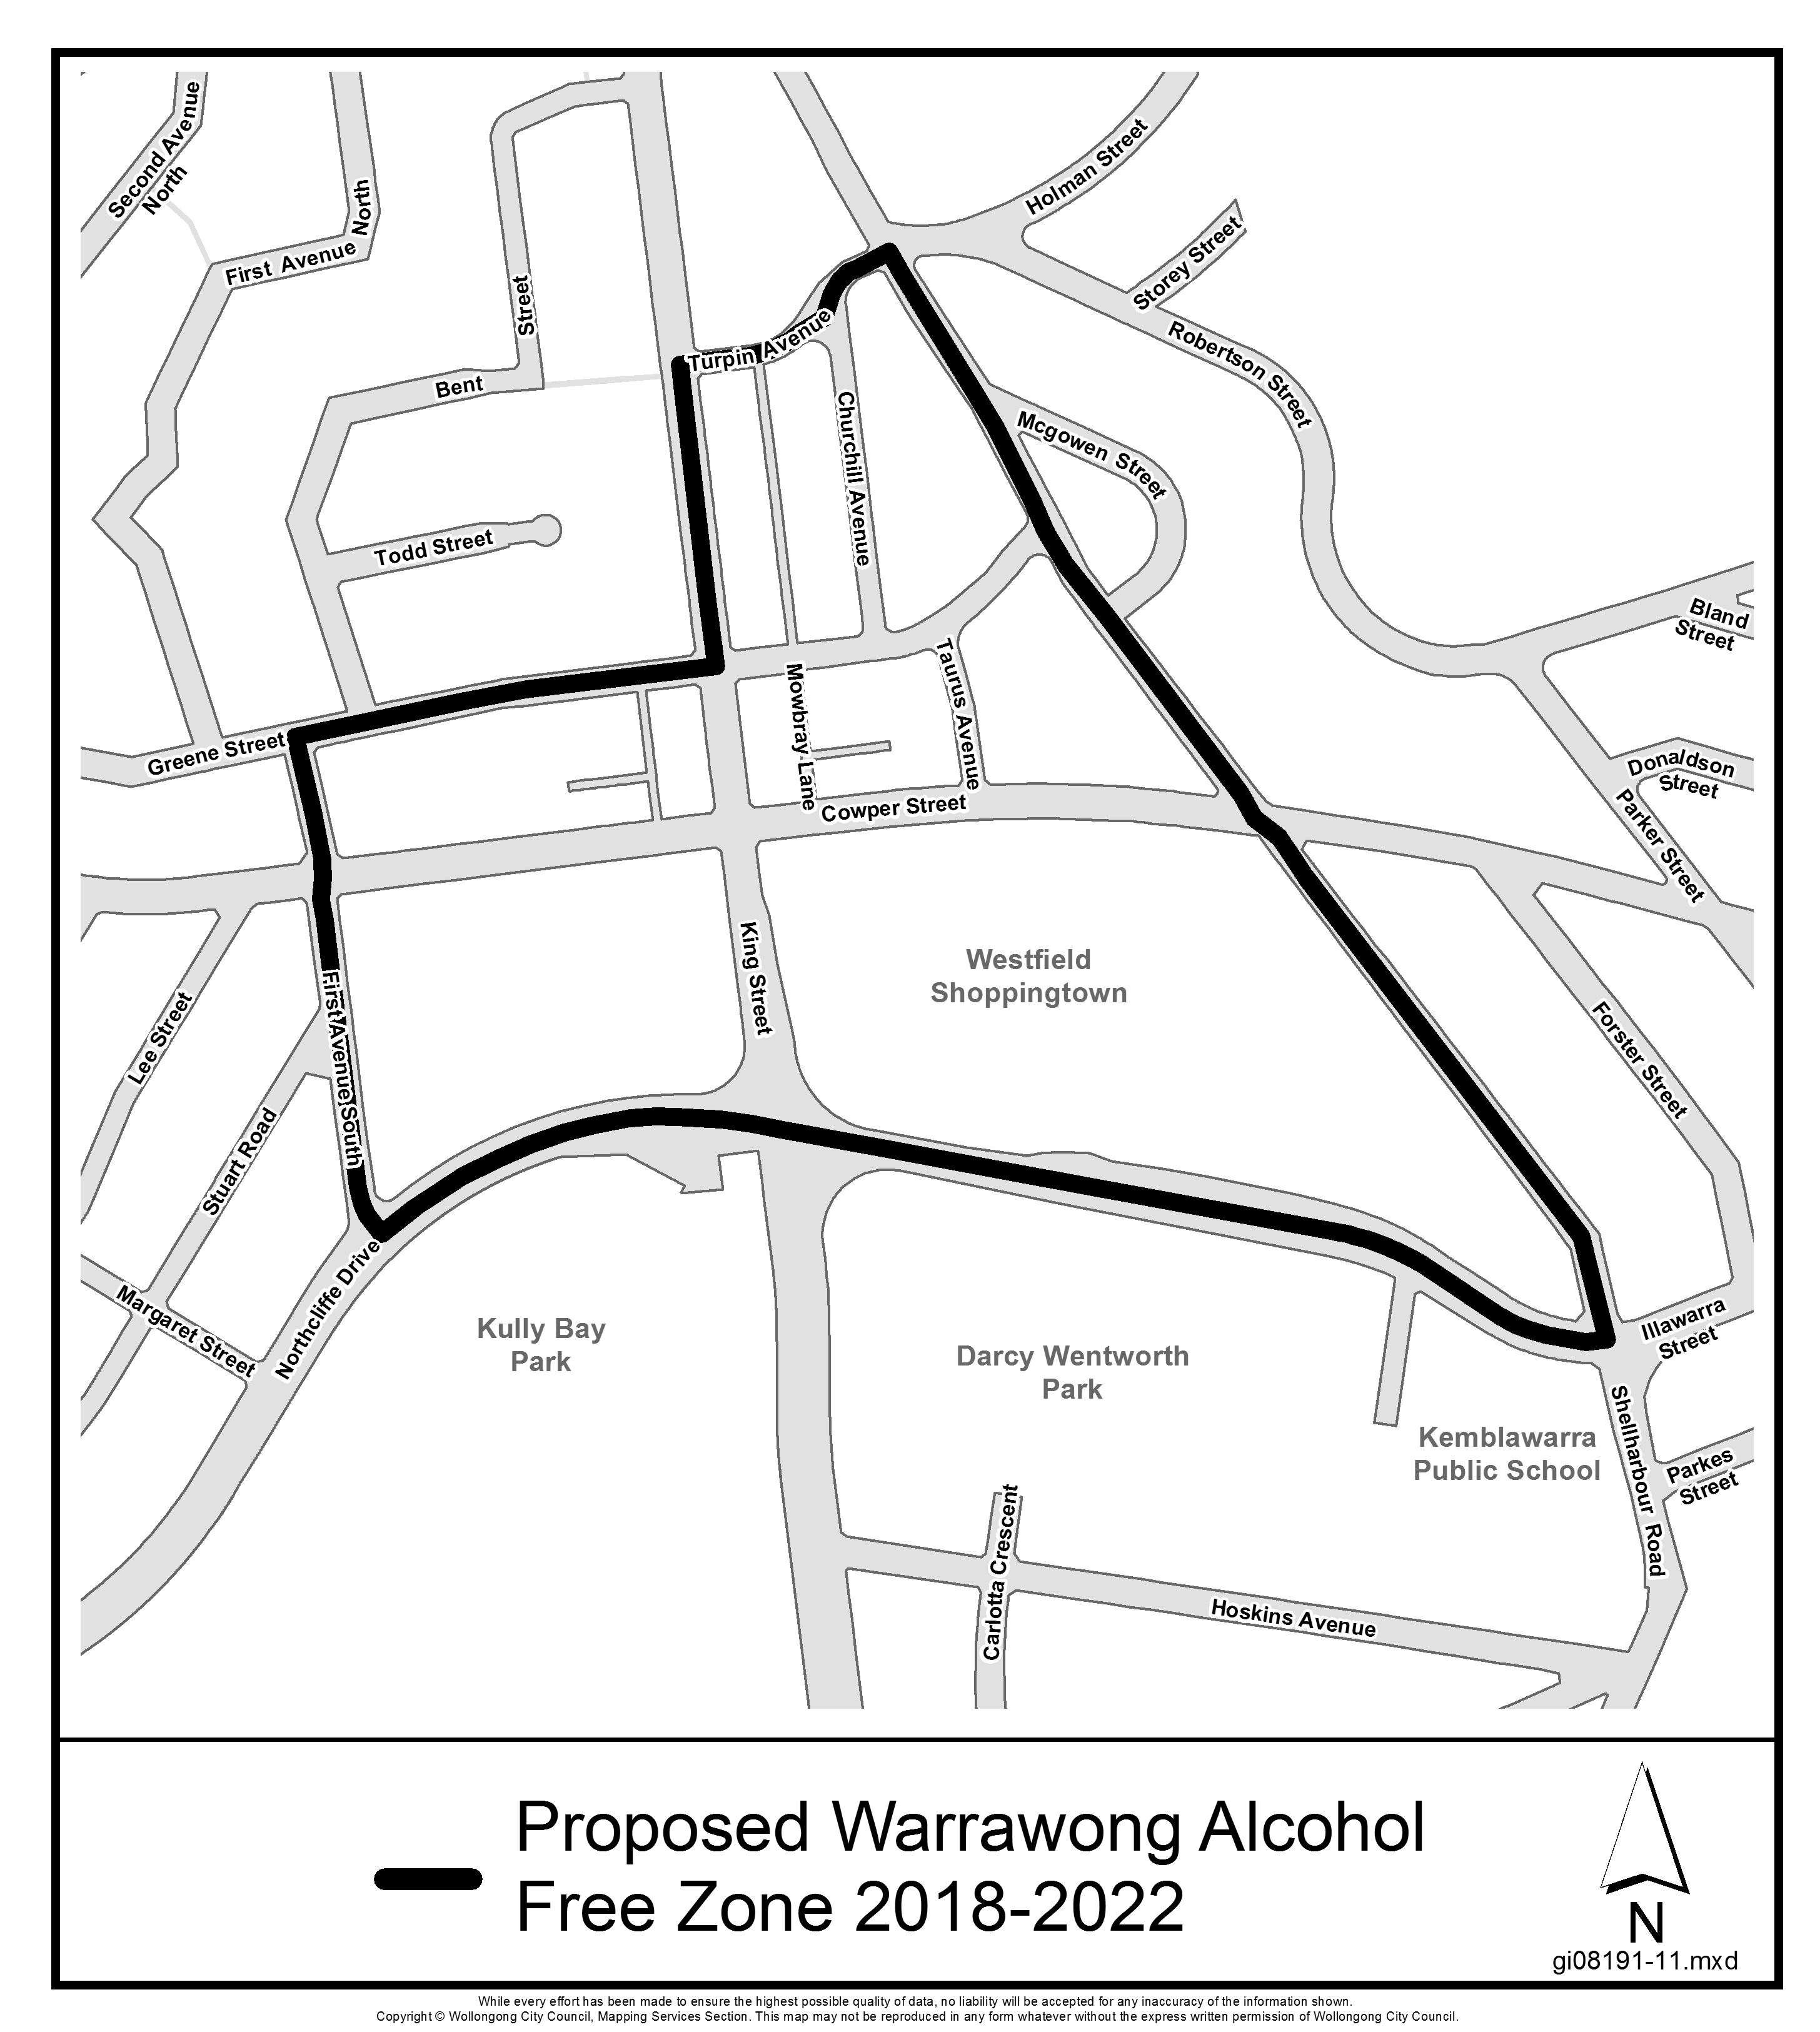 Proposed warrawong alcohol free zone 2018 2022